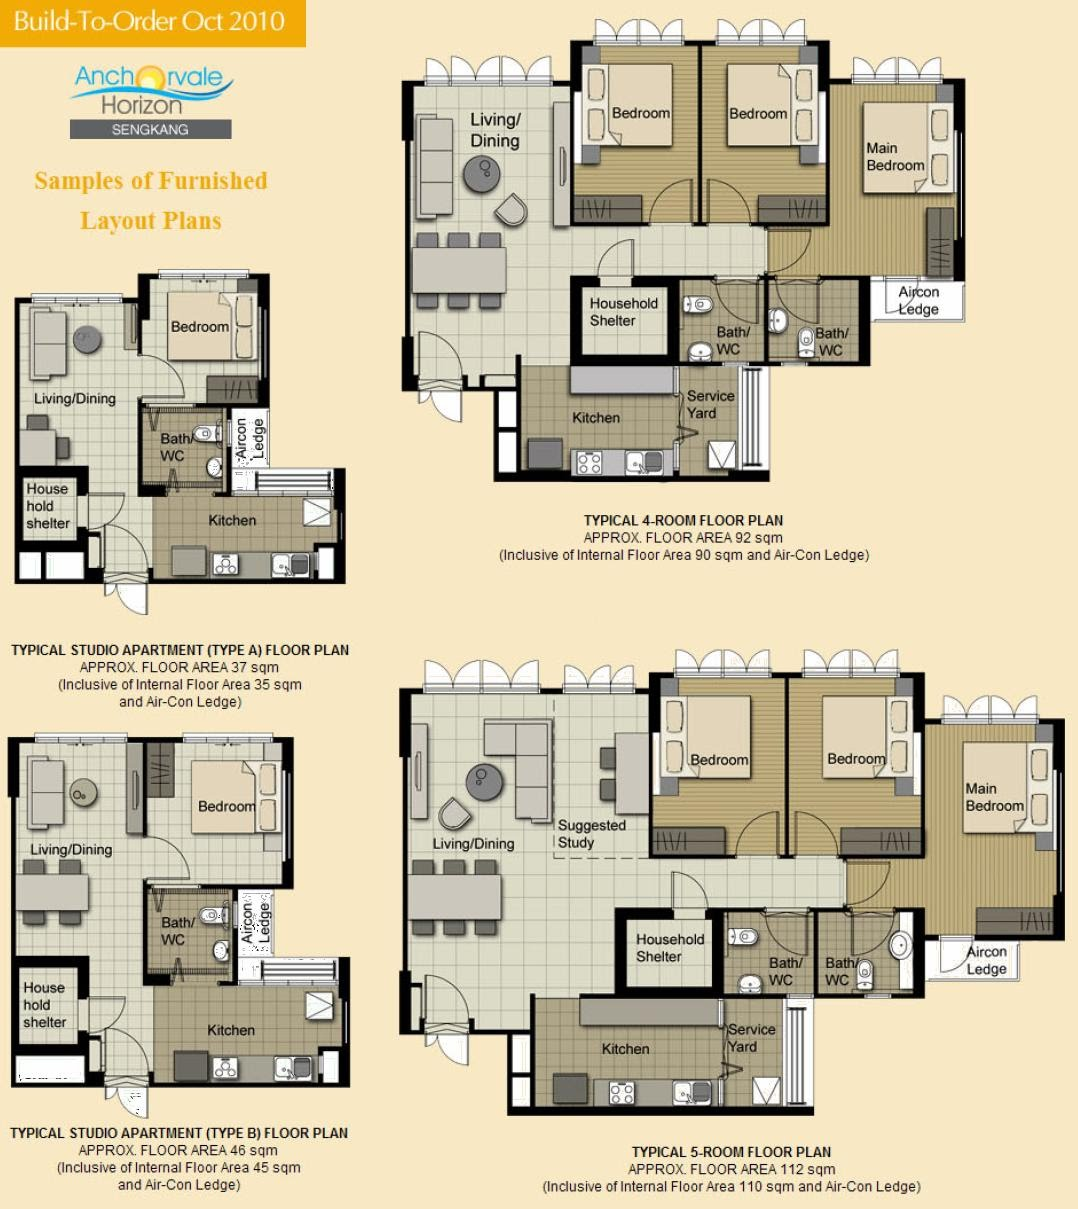 Simple Furbished layout Floor plans Click on image to enlarge